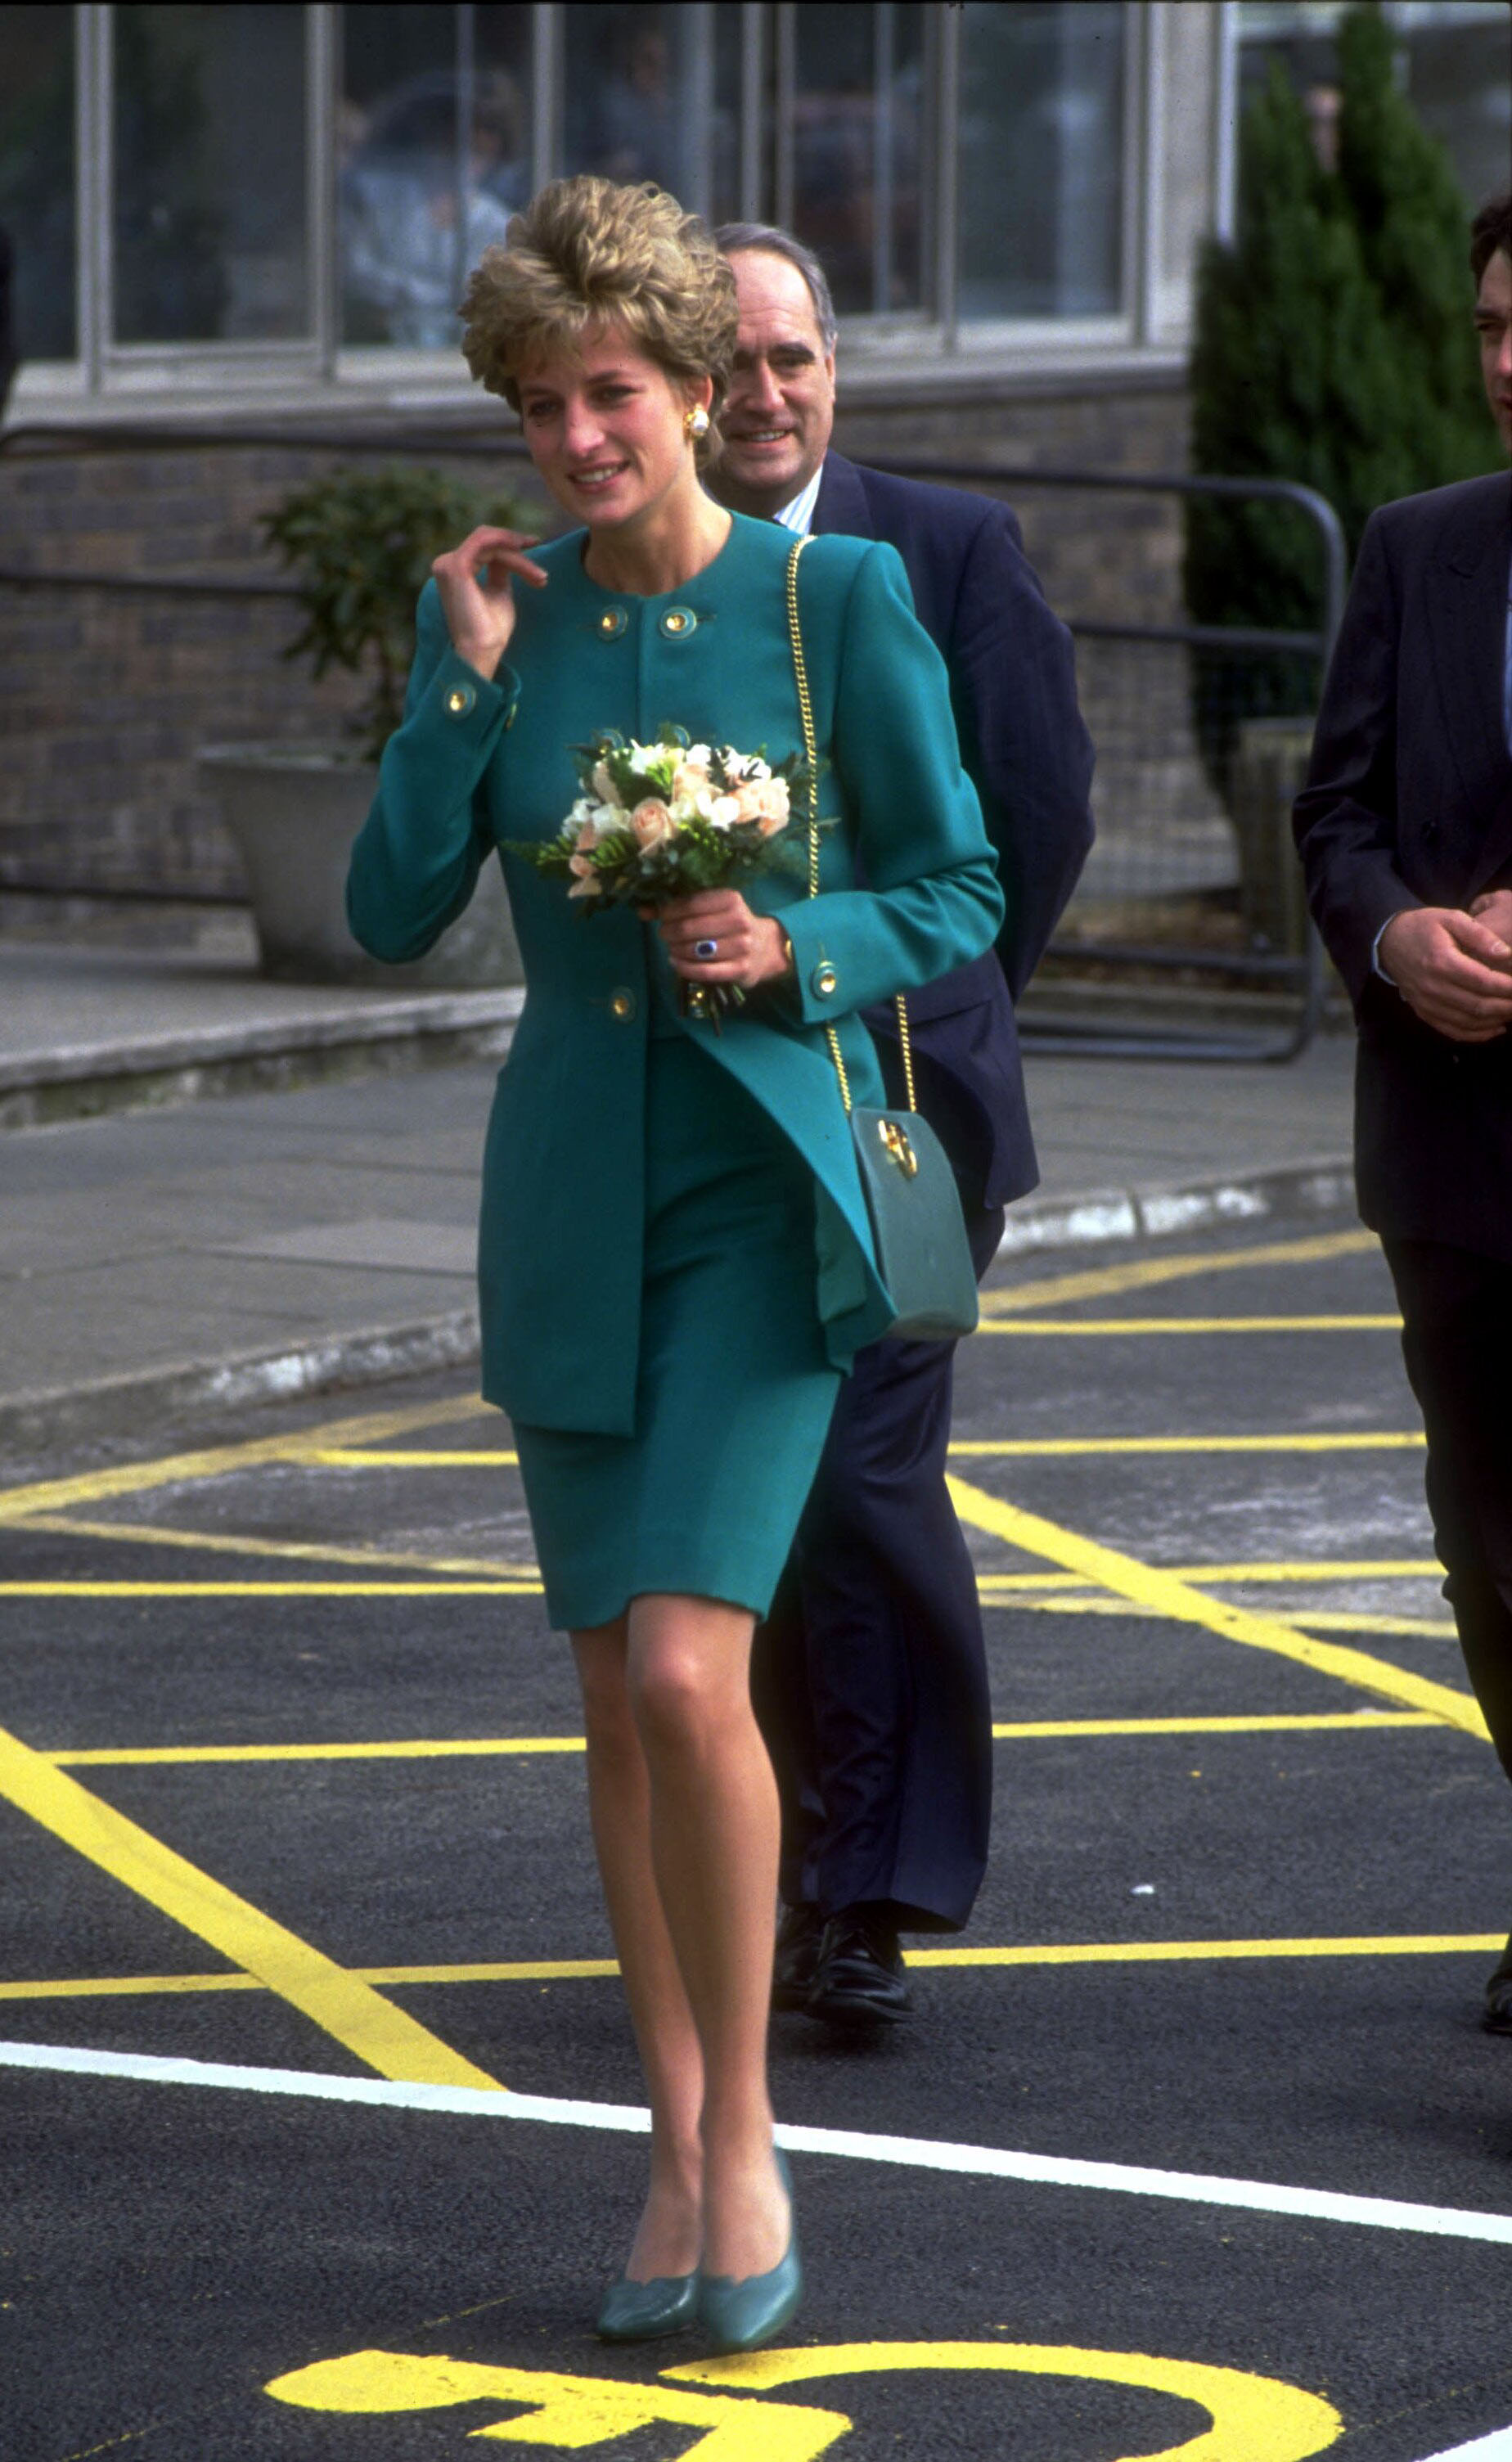 PRINCESS DIANA February 25th, 1993 SALES, Image: 21166981, License: Rights-managed, Restrictions: , Model Release: no, Credit line: Profimedia, Capital pictures